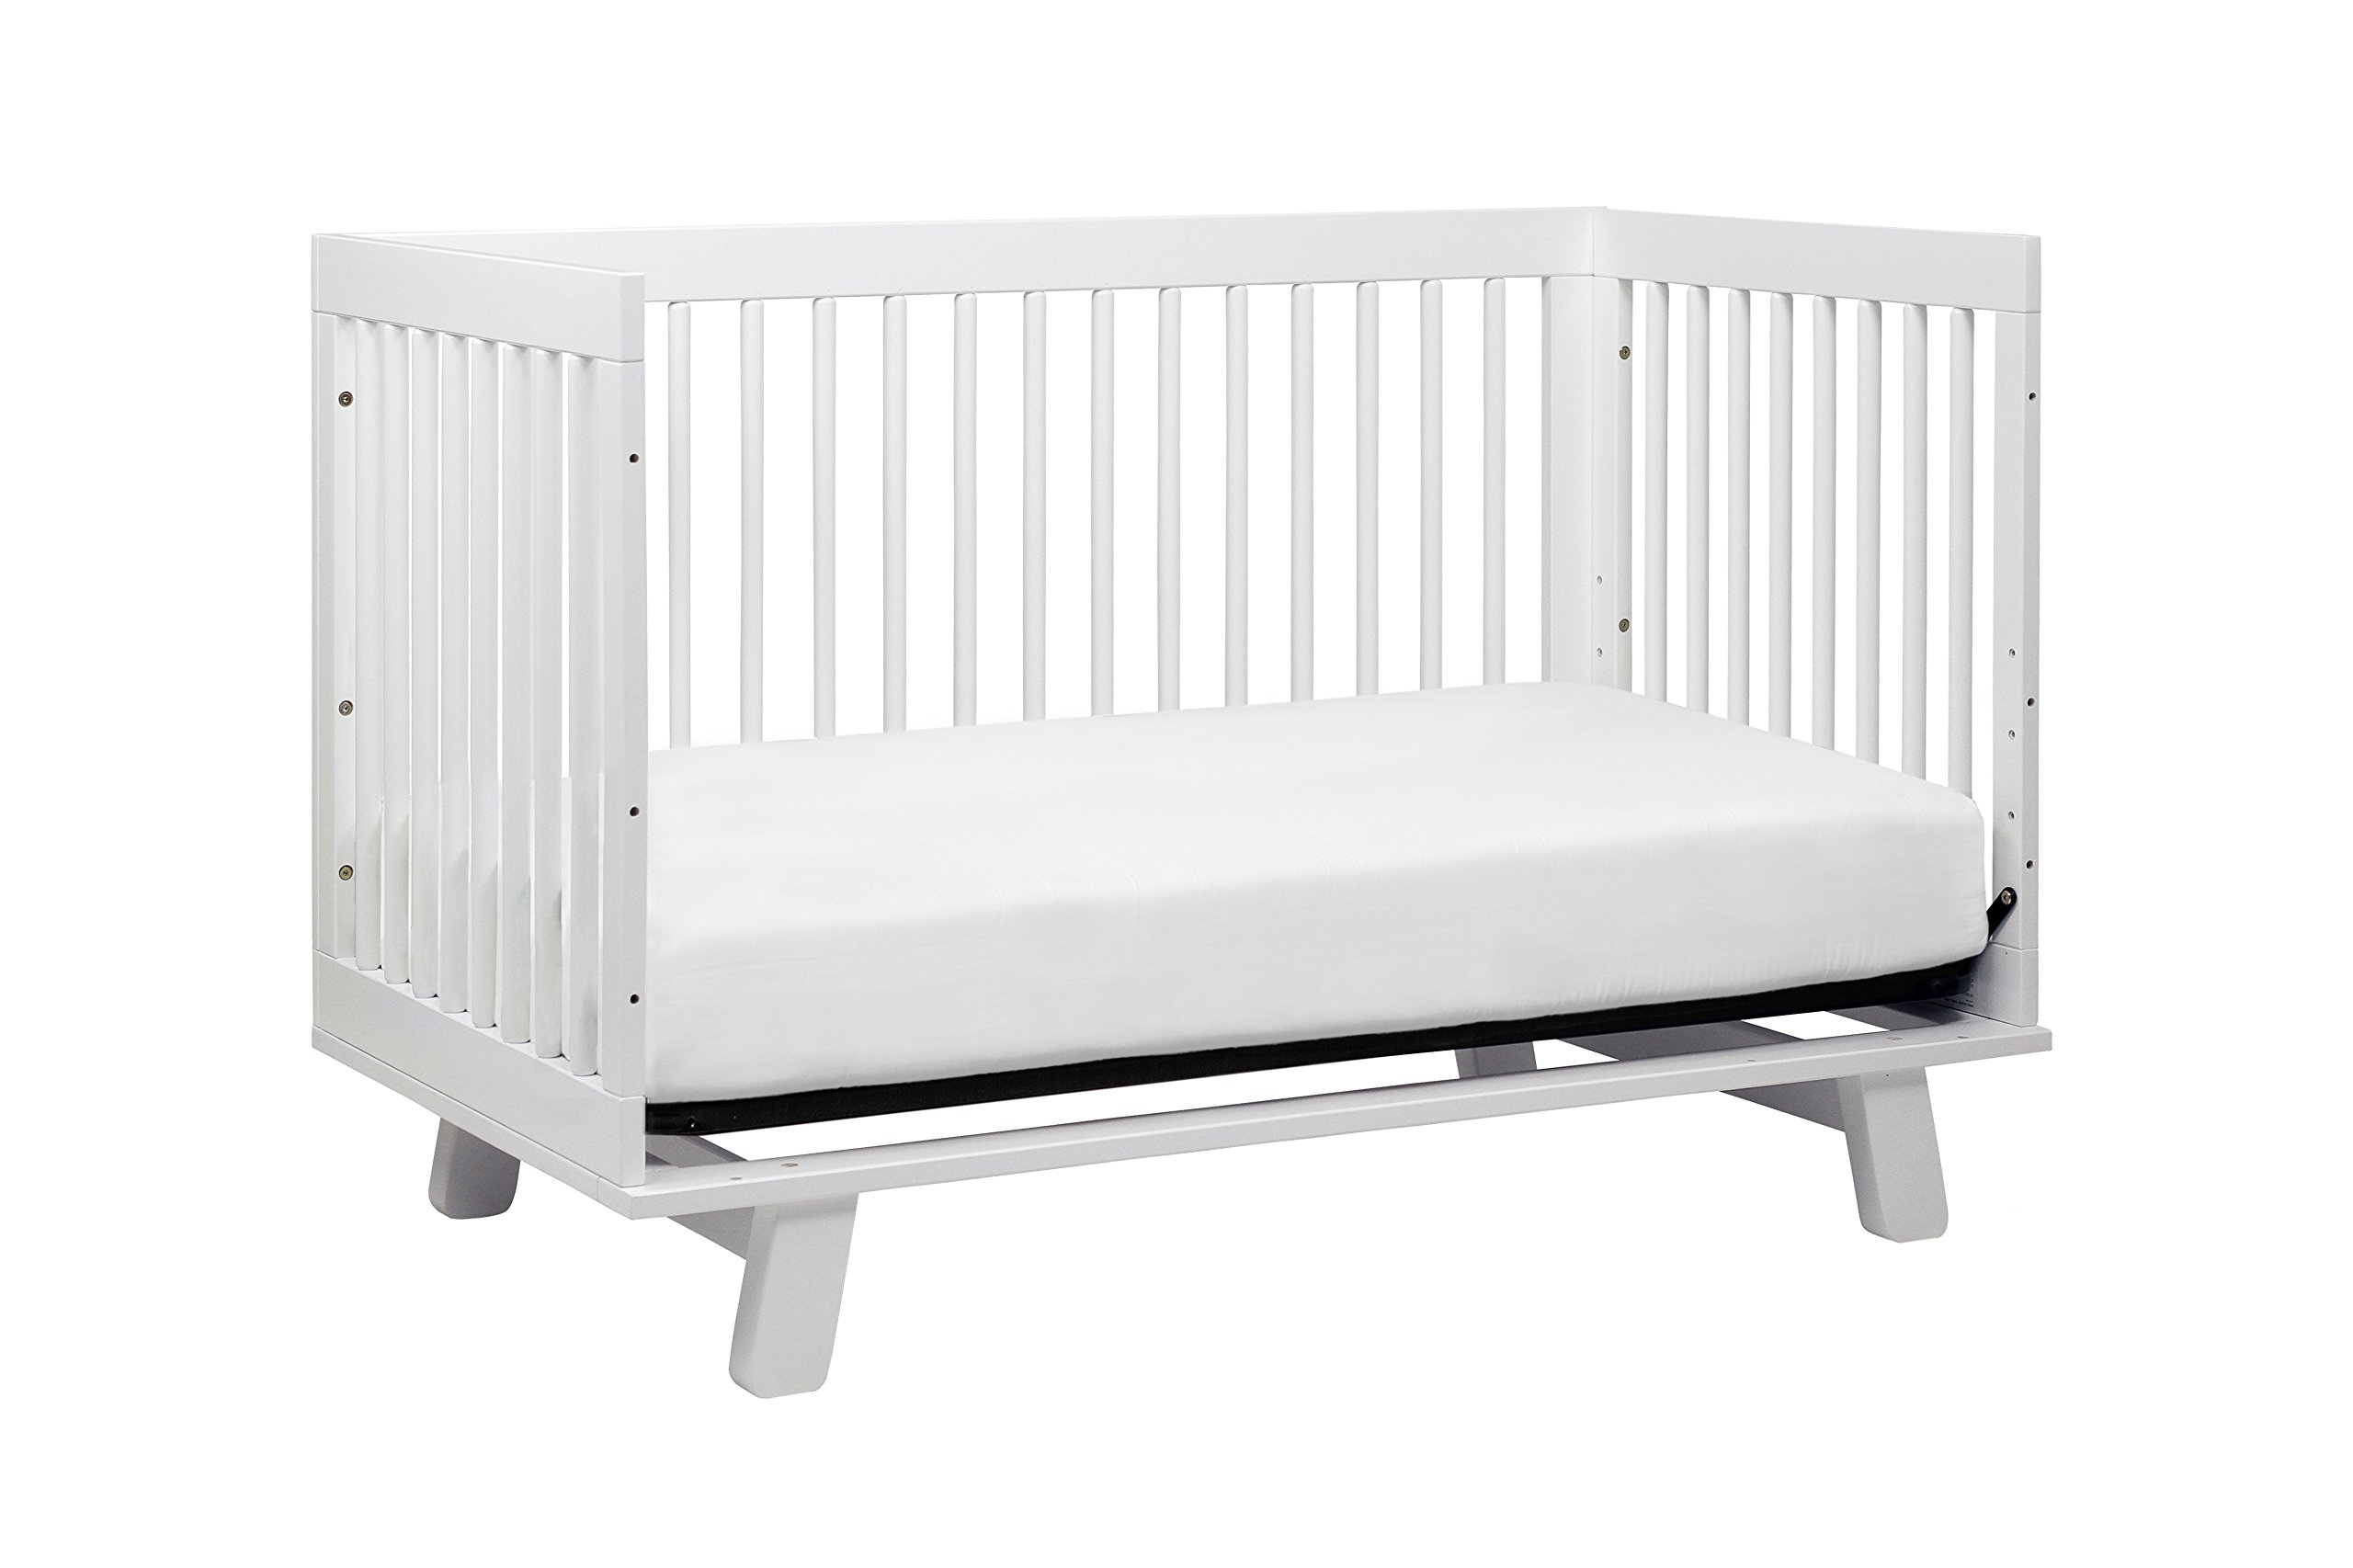 Babyletto Hudson 3-in-1 Convertible Crib with Toddler Bed Conversion Kit, White by babyletto (Image #7)